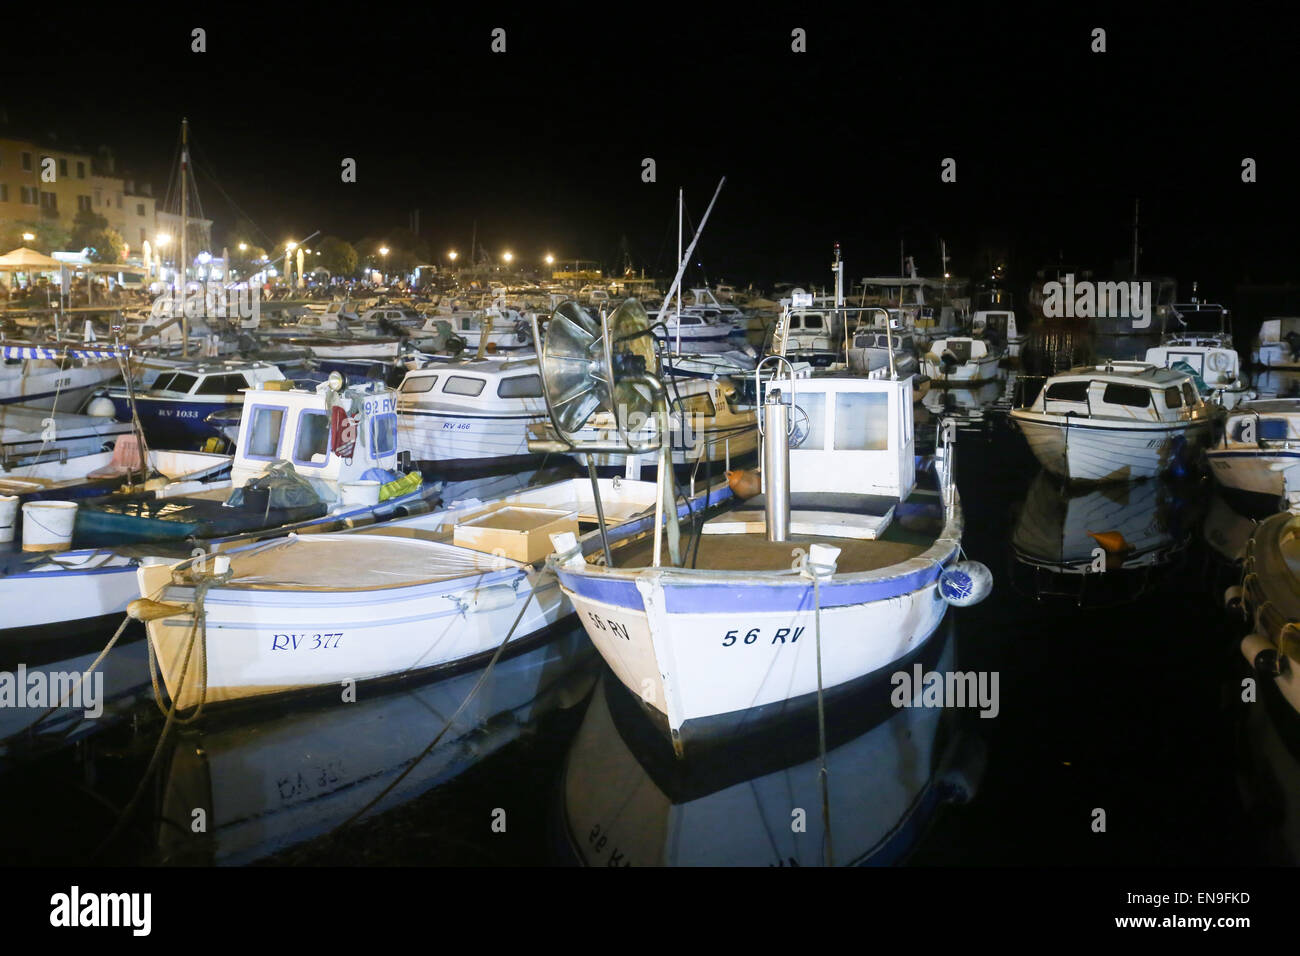 A large group of boats anchored in the marina with a view of the city seafront at night in Rovinj, Croatia. - Stock Image